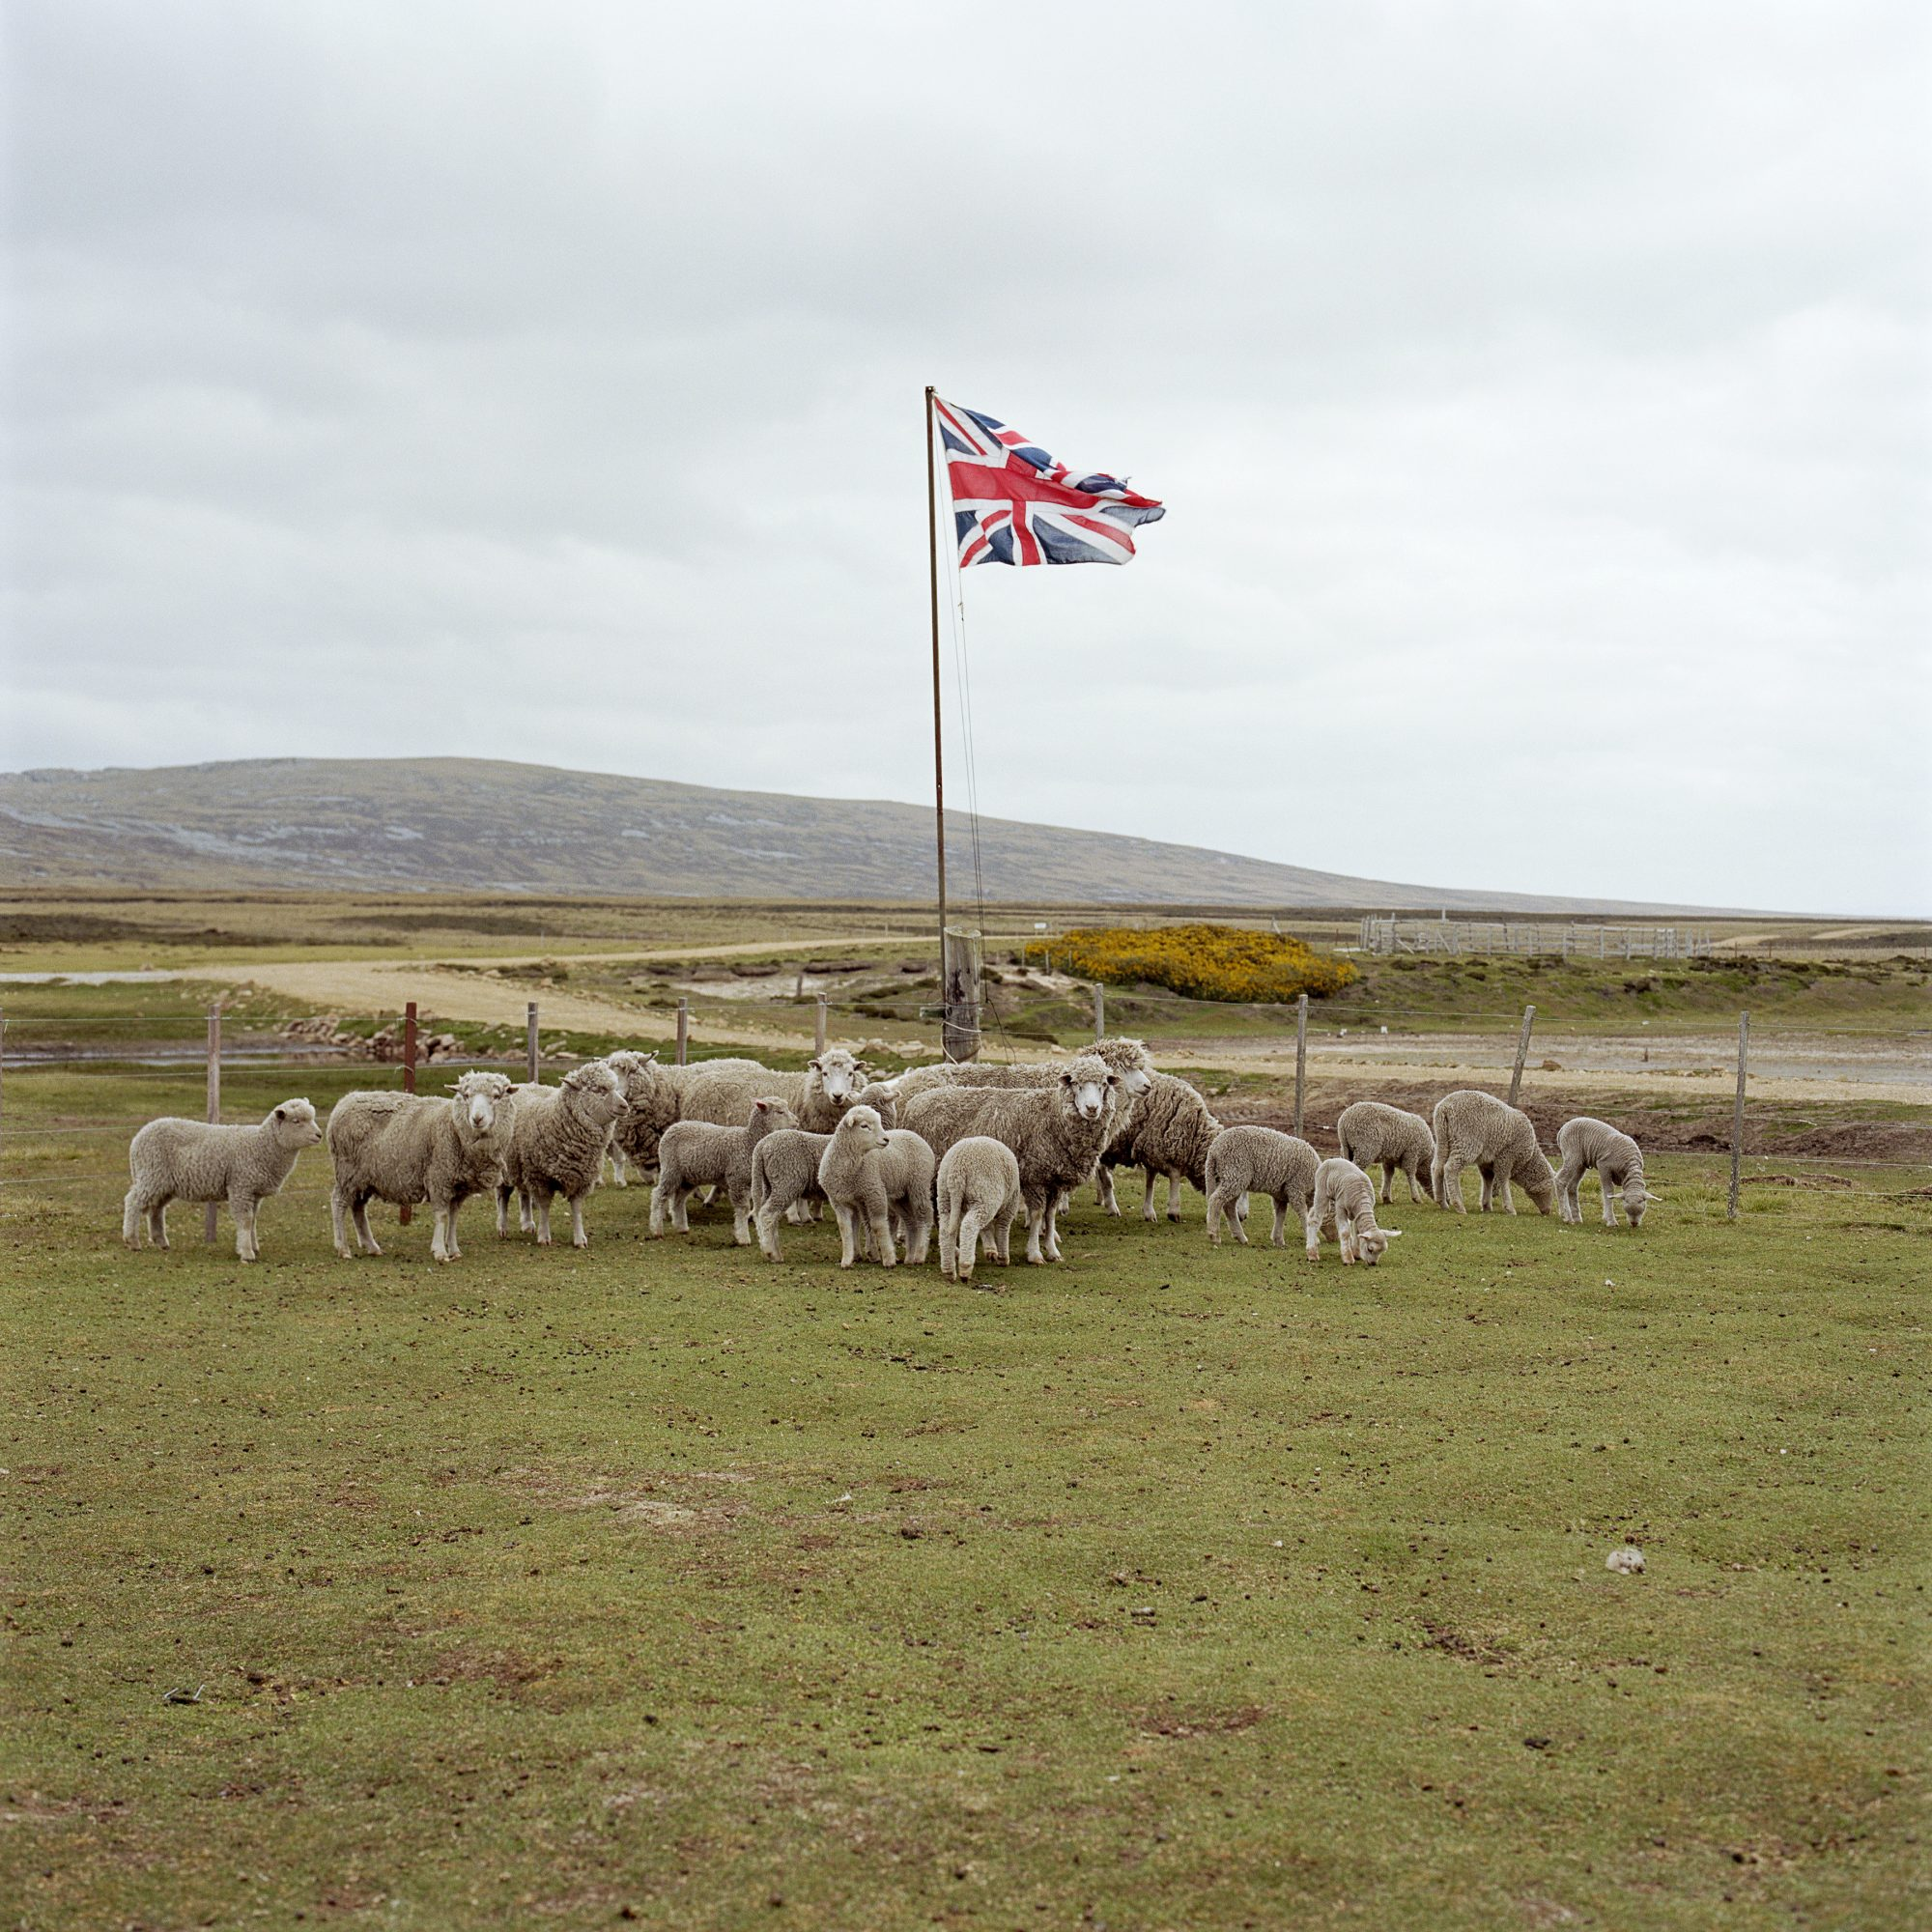 A Gather of Sheep photography by Jon Tonks